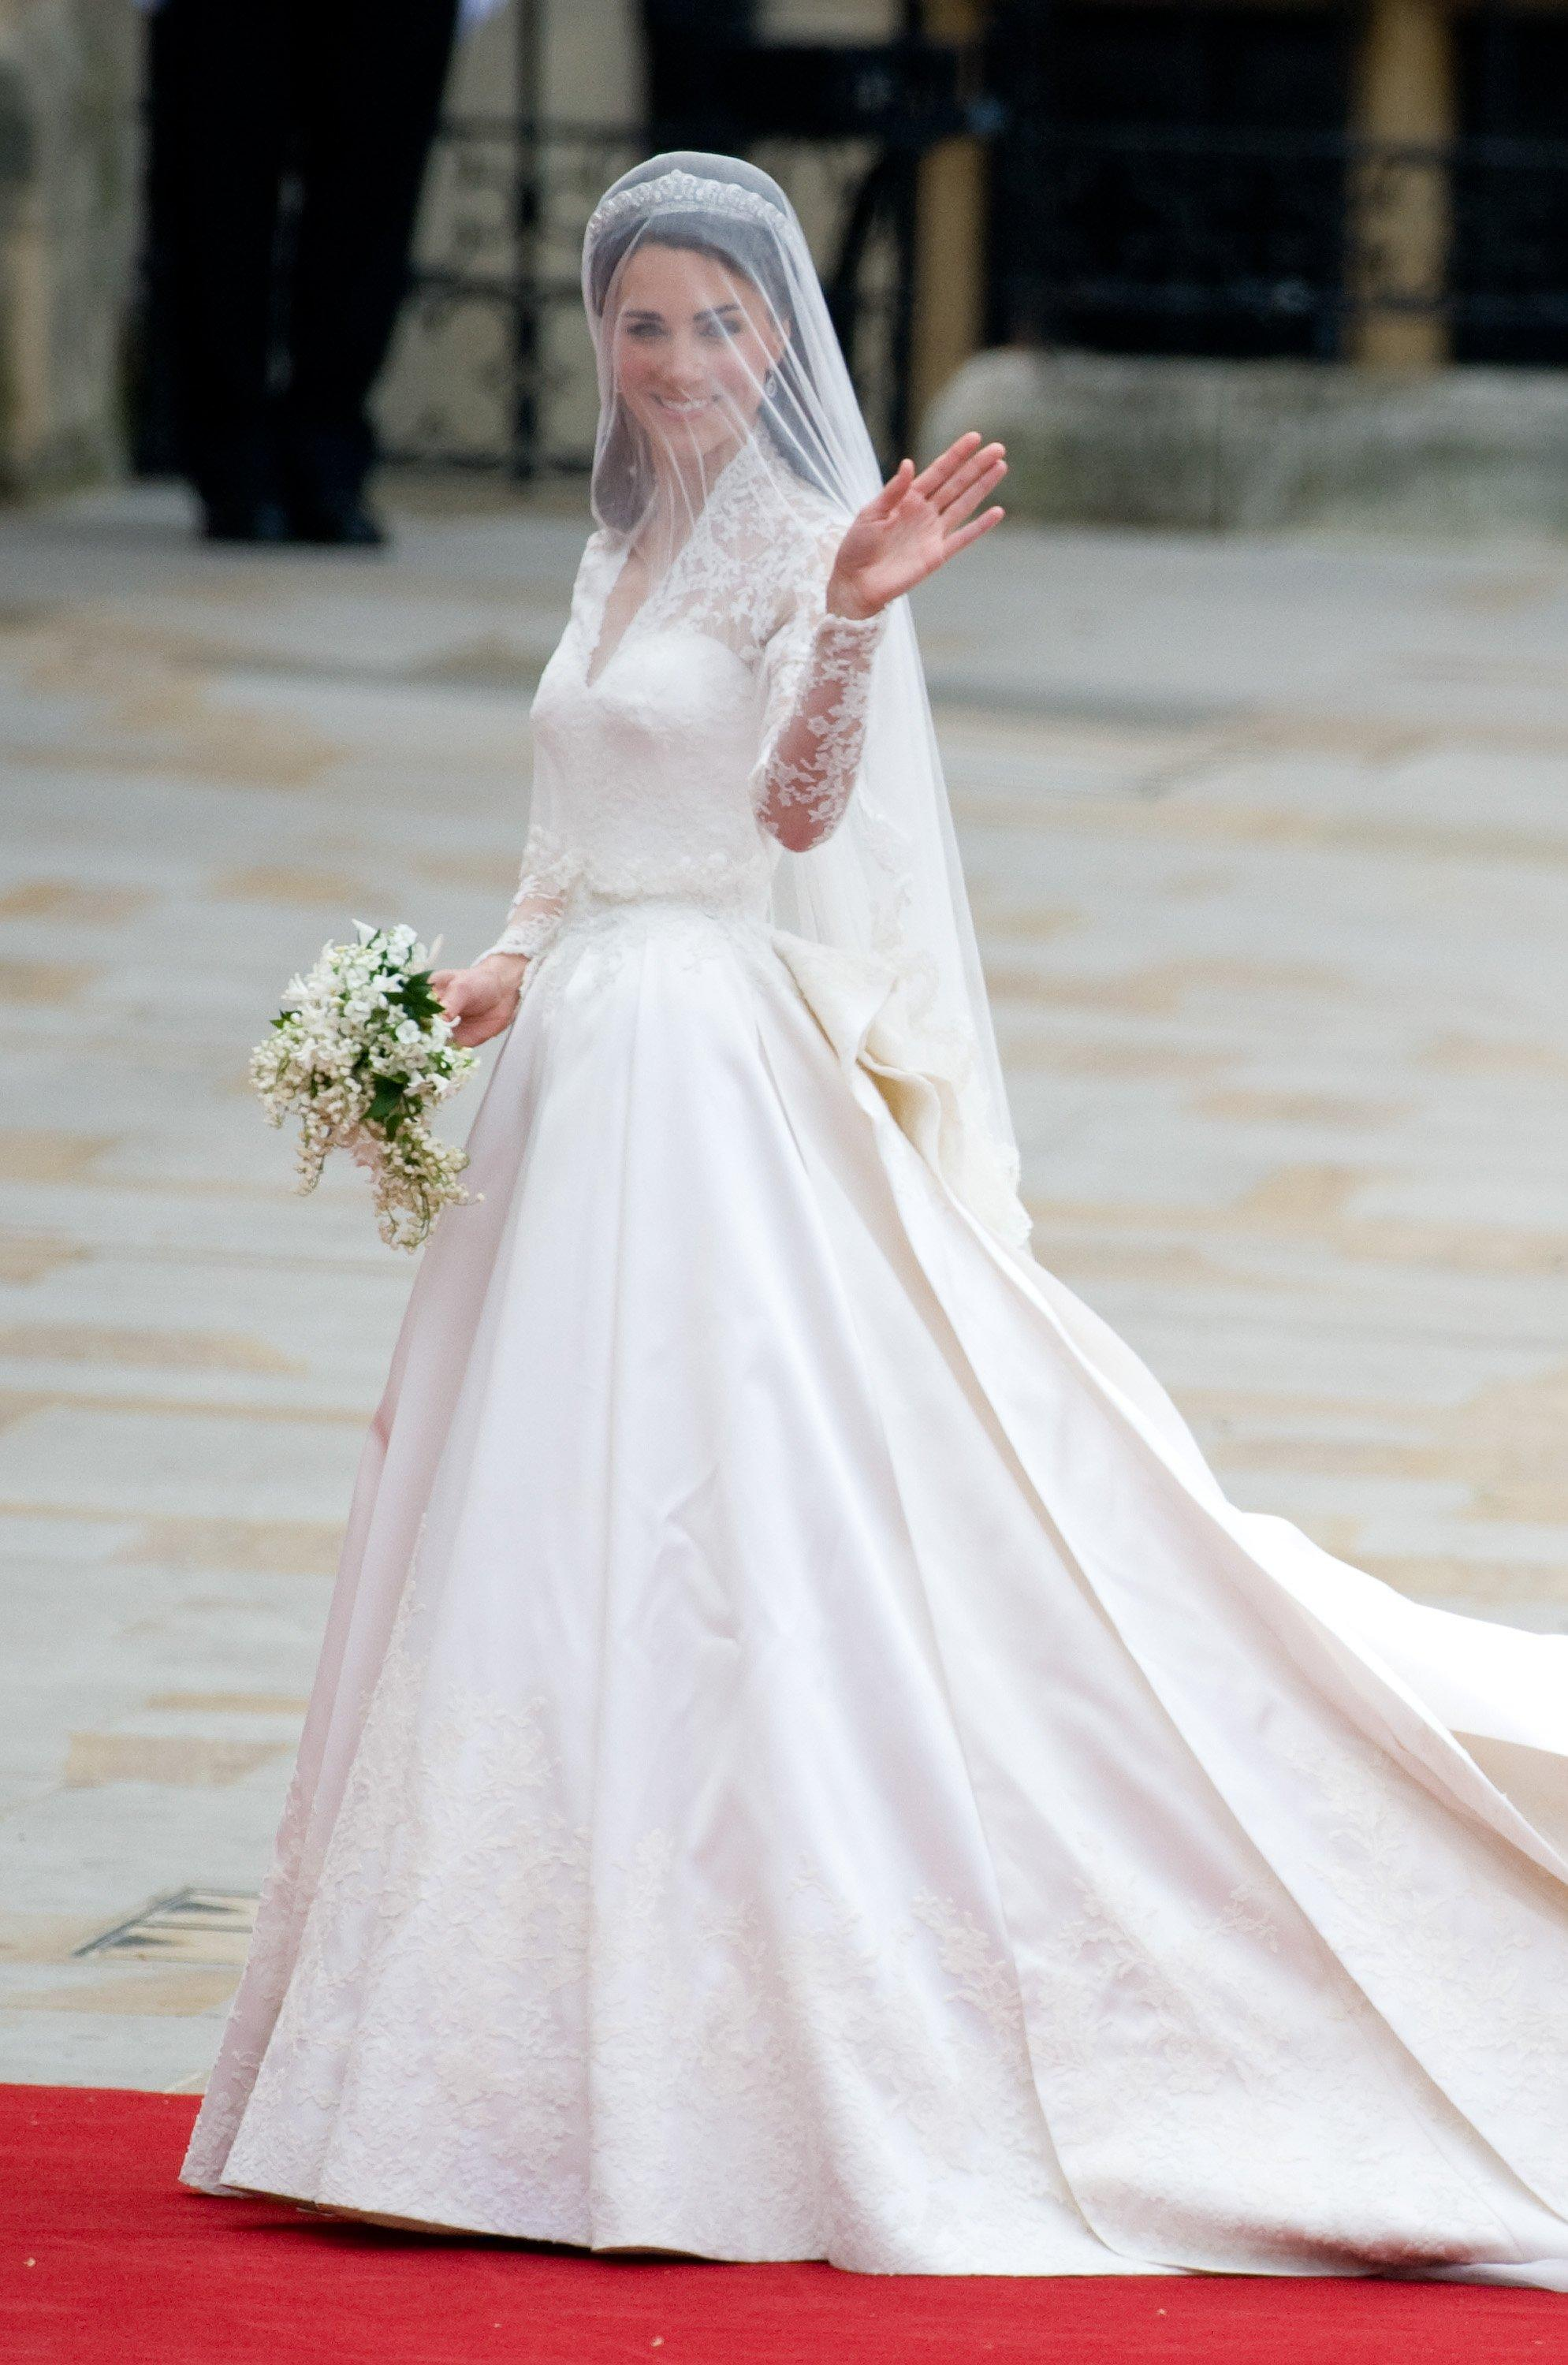 The Kate And Pippa Wedding Moments That Will Make You Want